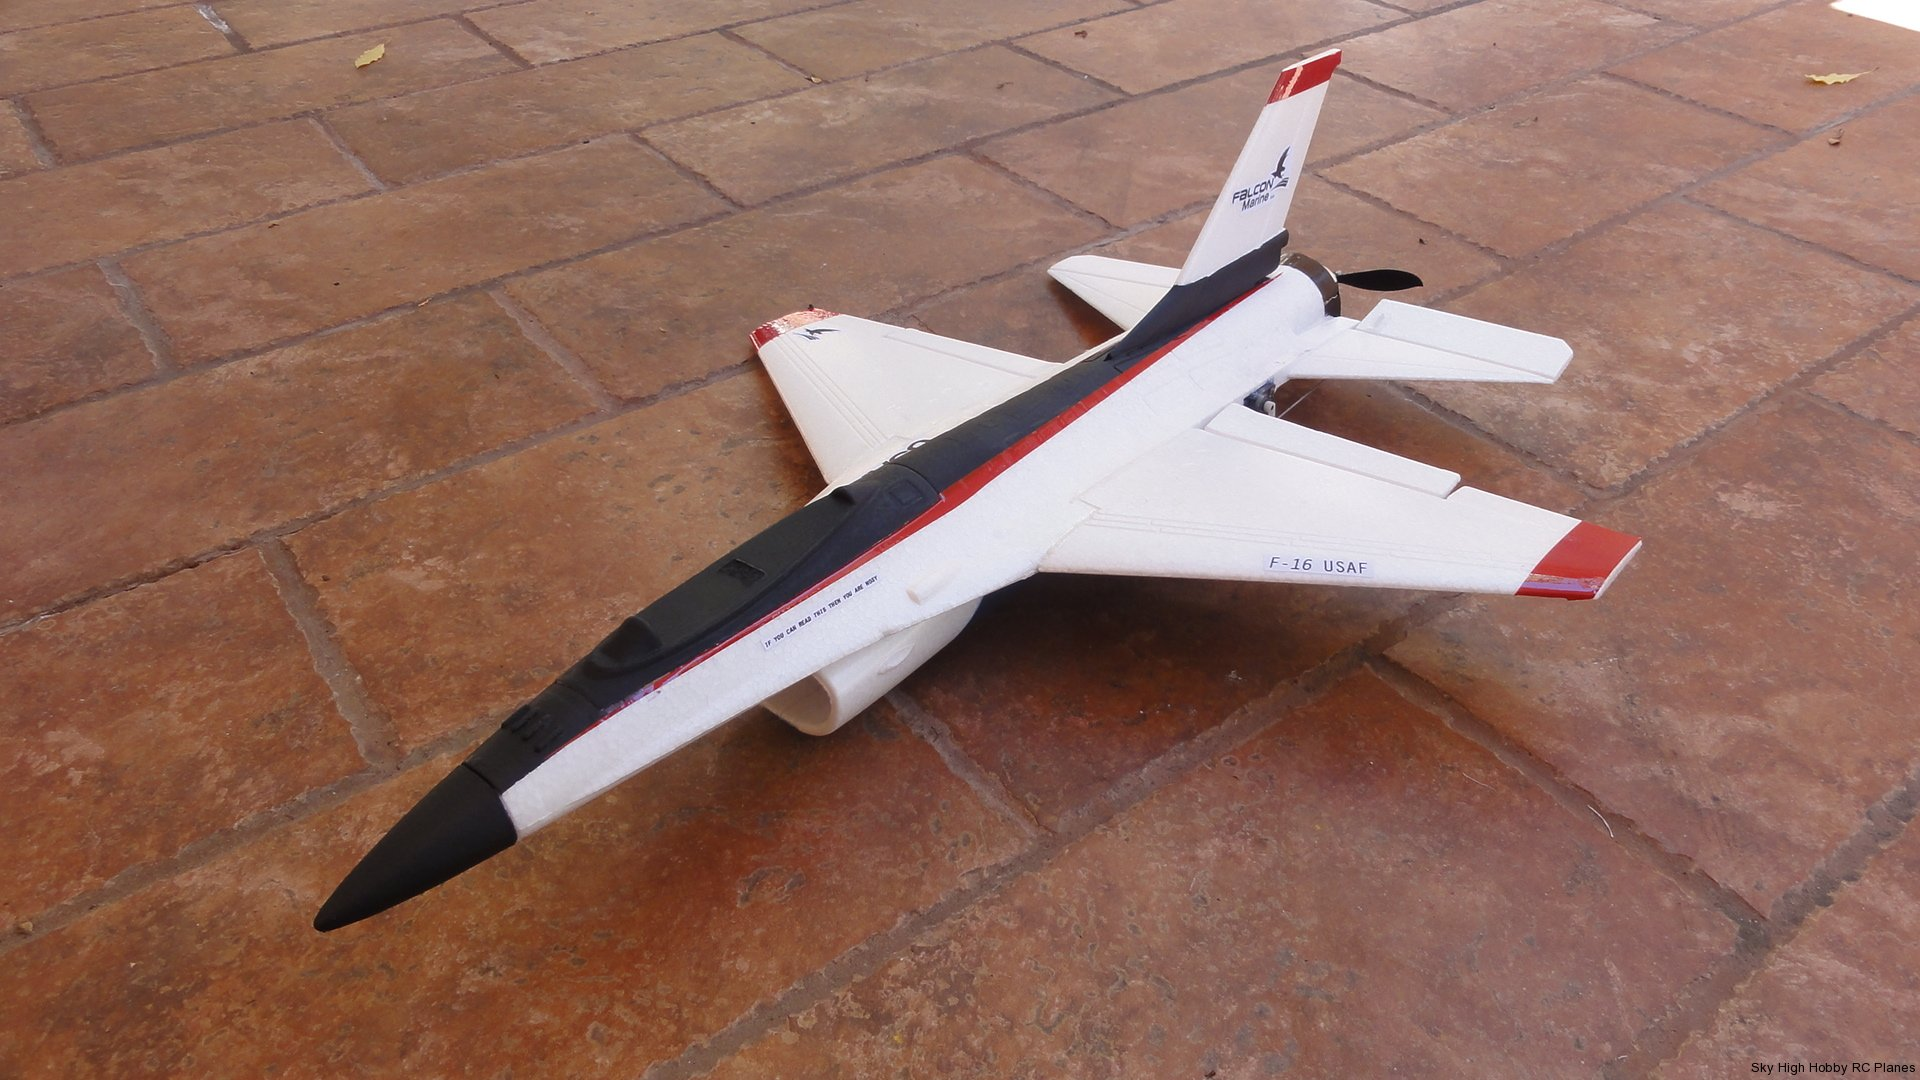 best electric rc planes with 2011 Rc Plane Pics on Ww1 Planes furthermore Attachment likewise 53 further 81a219y Fantrainer Yellow likewise Ww2jamia6mze.